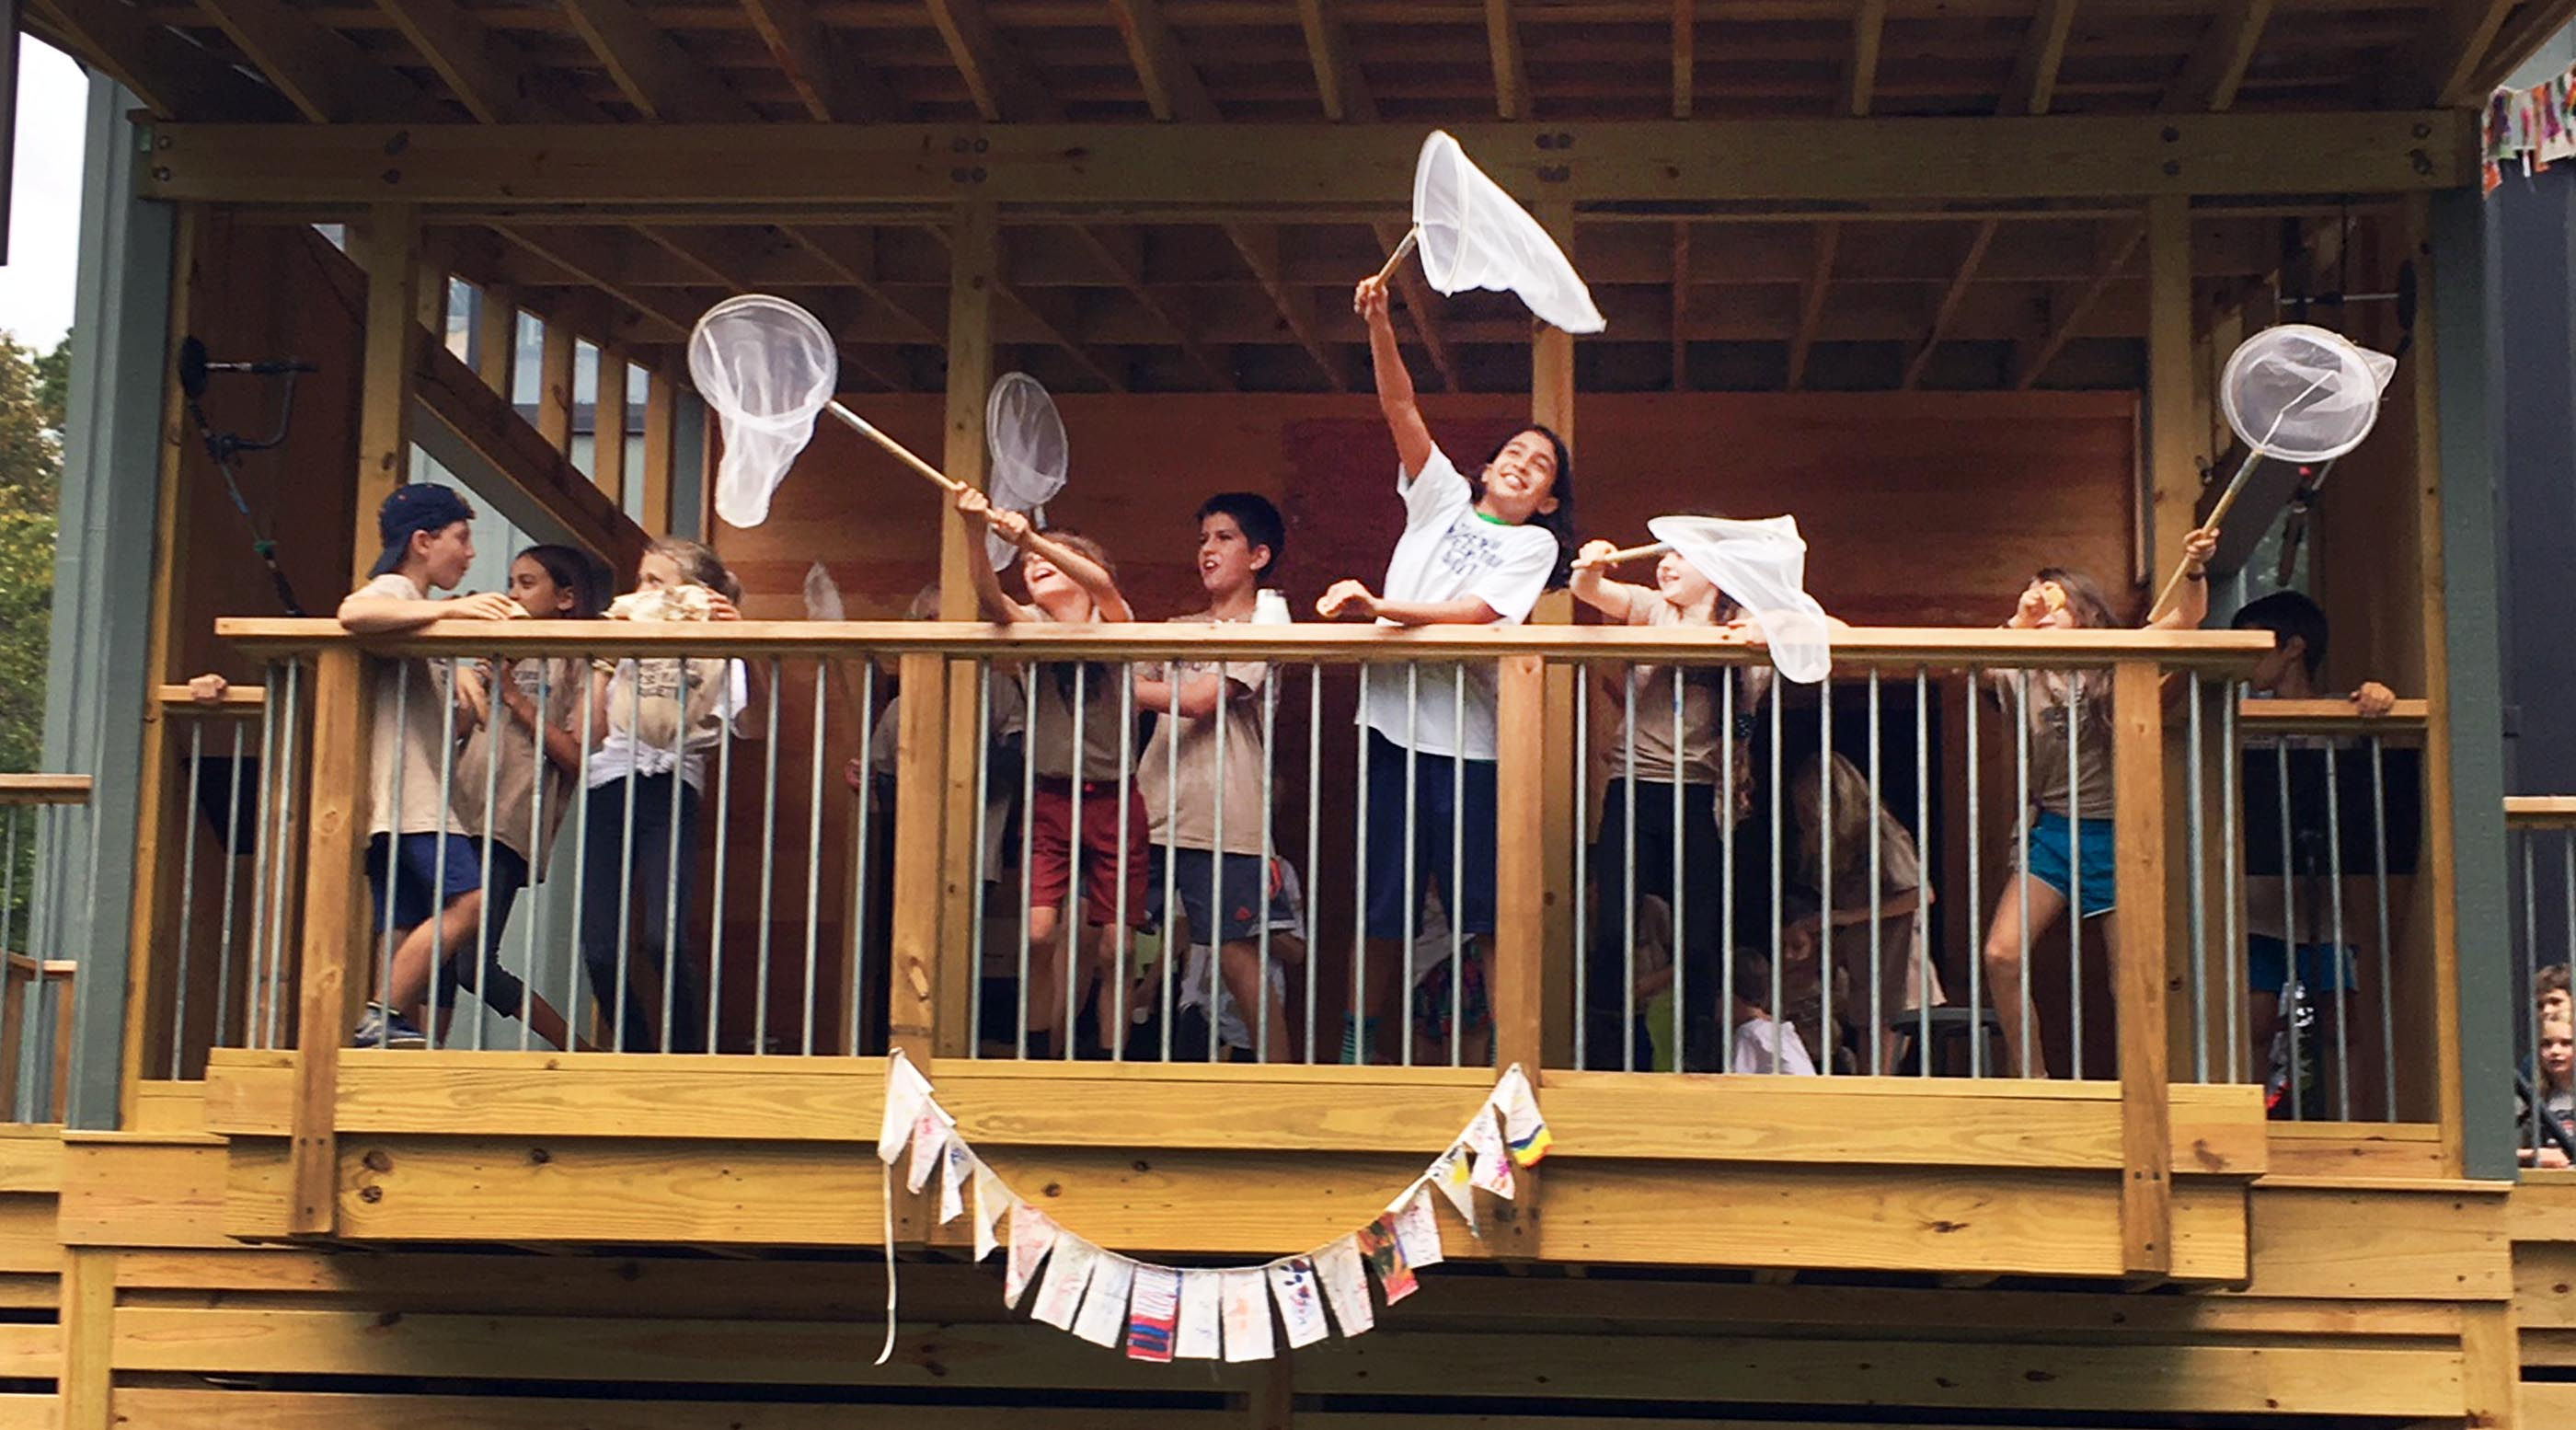 Group of students wave butterfly nets excitedly on the outdoor classroom deck